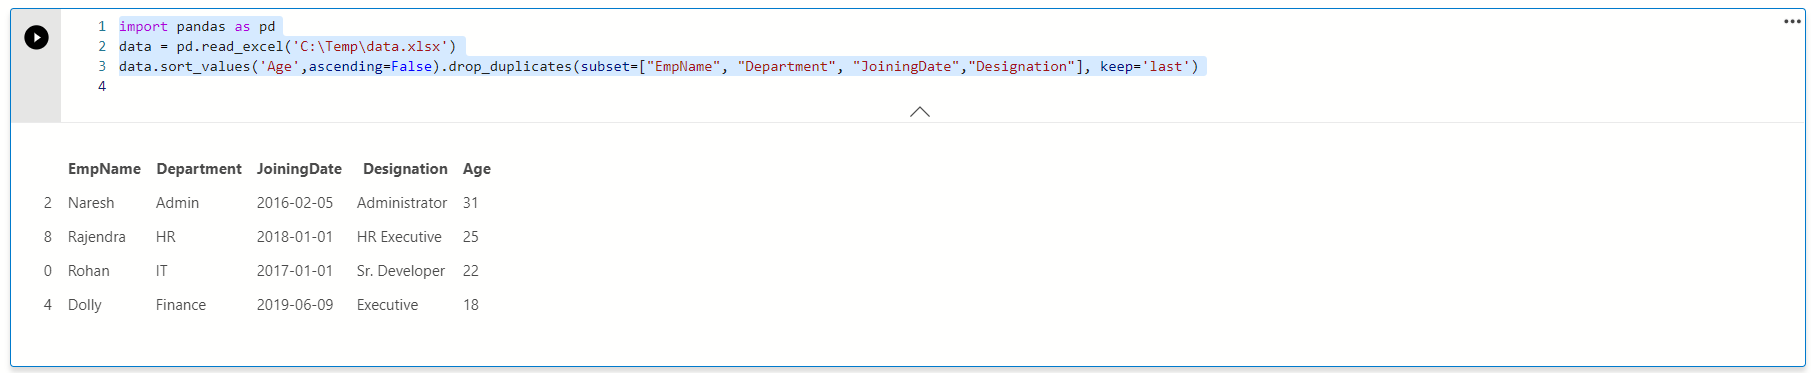 Remove duplicates by keeping minimum value